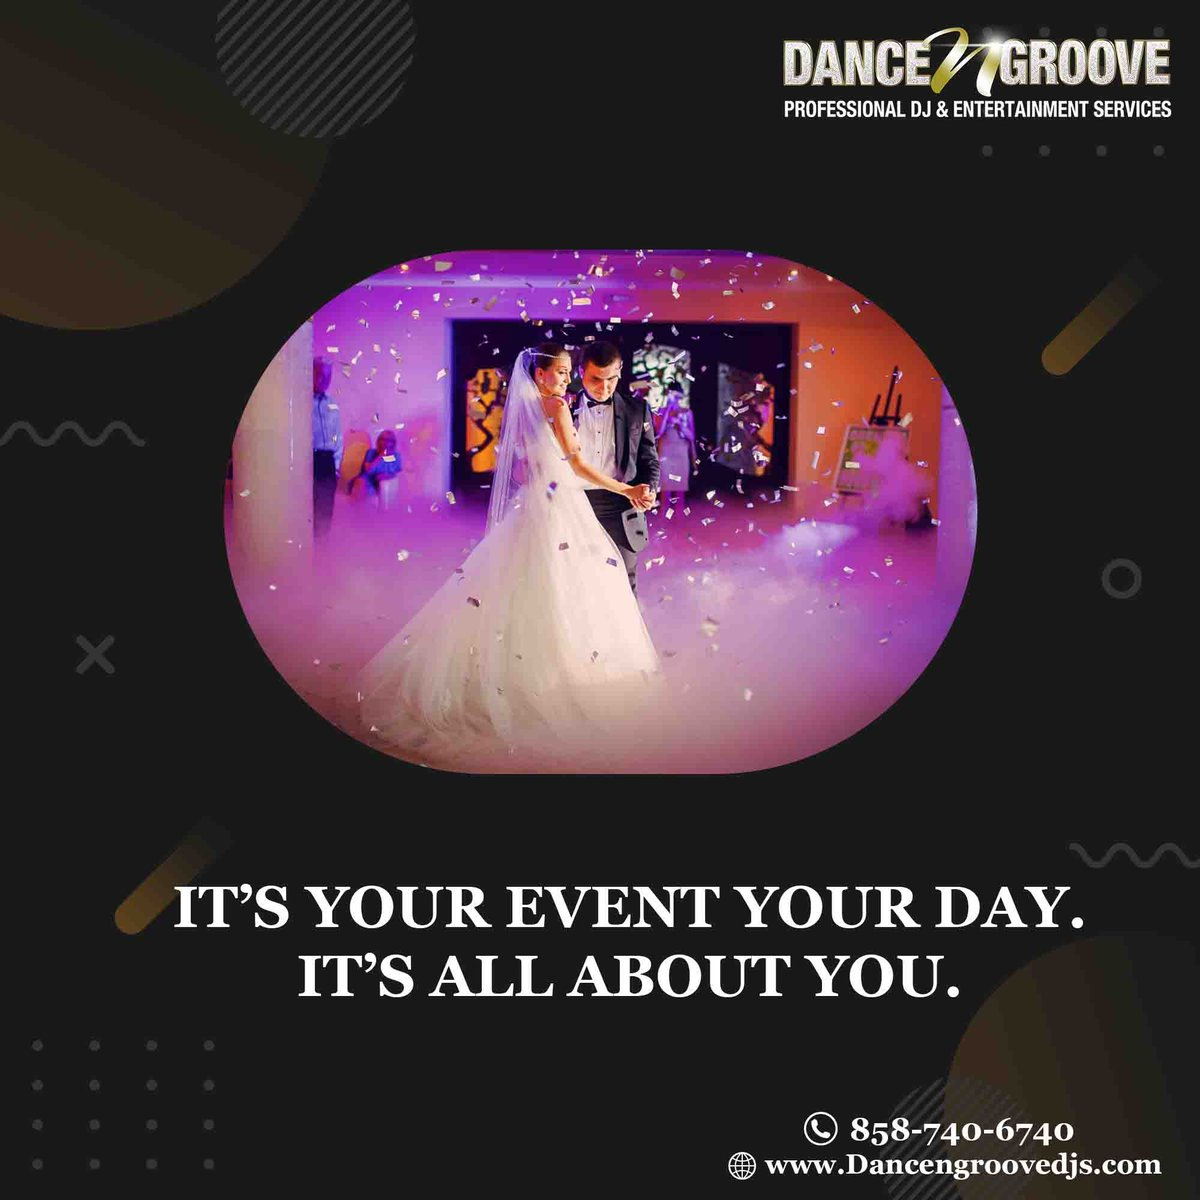 We offer all-inclusive wedding packages, from pre-planning to the rehearsal dinner and reception, so your peace of mind is guaranteed!   📞858-740-6740⁠ 💻⁠ ⁠ #dj #music #party #dance #party #wedding #friends #happy #celebrate #fun #venue #eventplanner